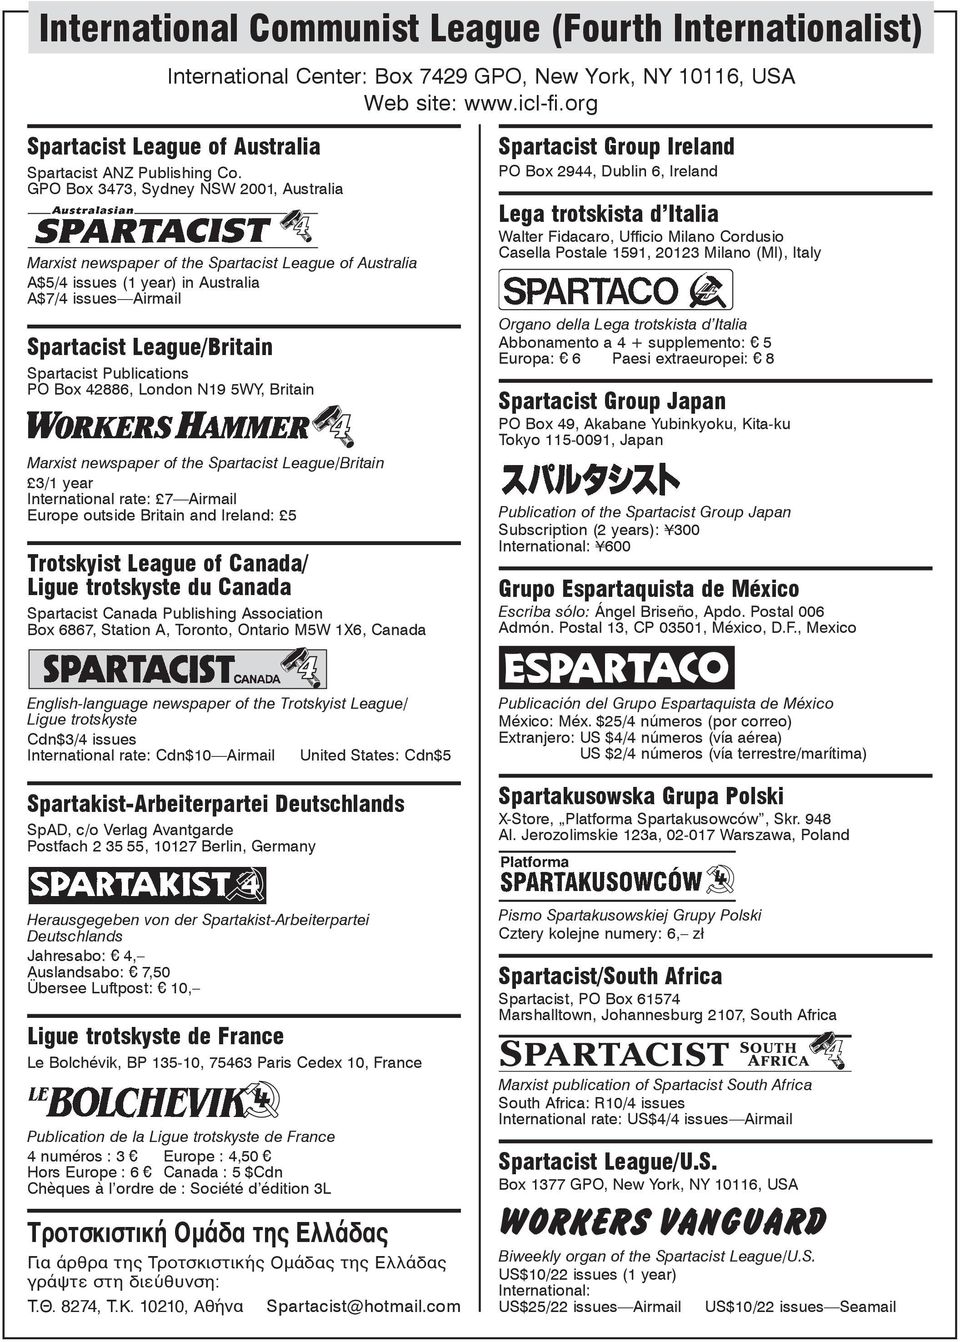 GPO Box 3473, Sydney NSW 2001, Australia Marxist newspaper of the Spartacist League of Australia A$5/4 issues (1 year) in Australia A$7/4 issues Airmail Spartacist League/Britain Spartacist